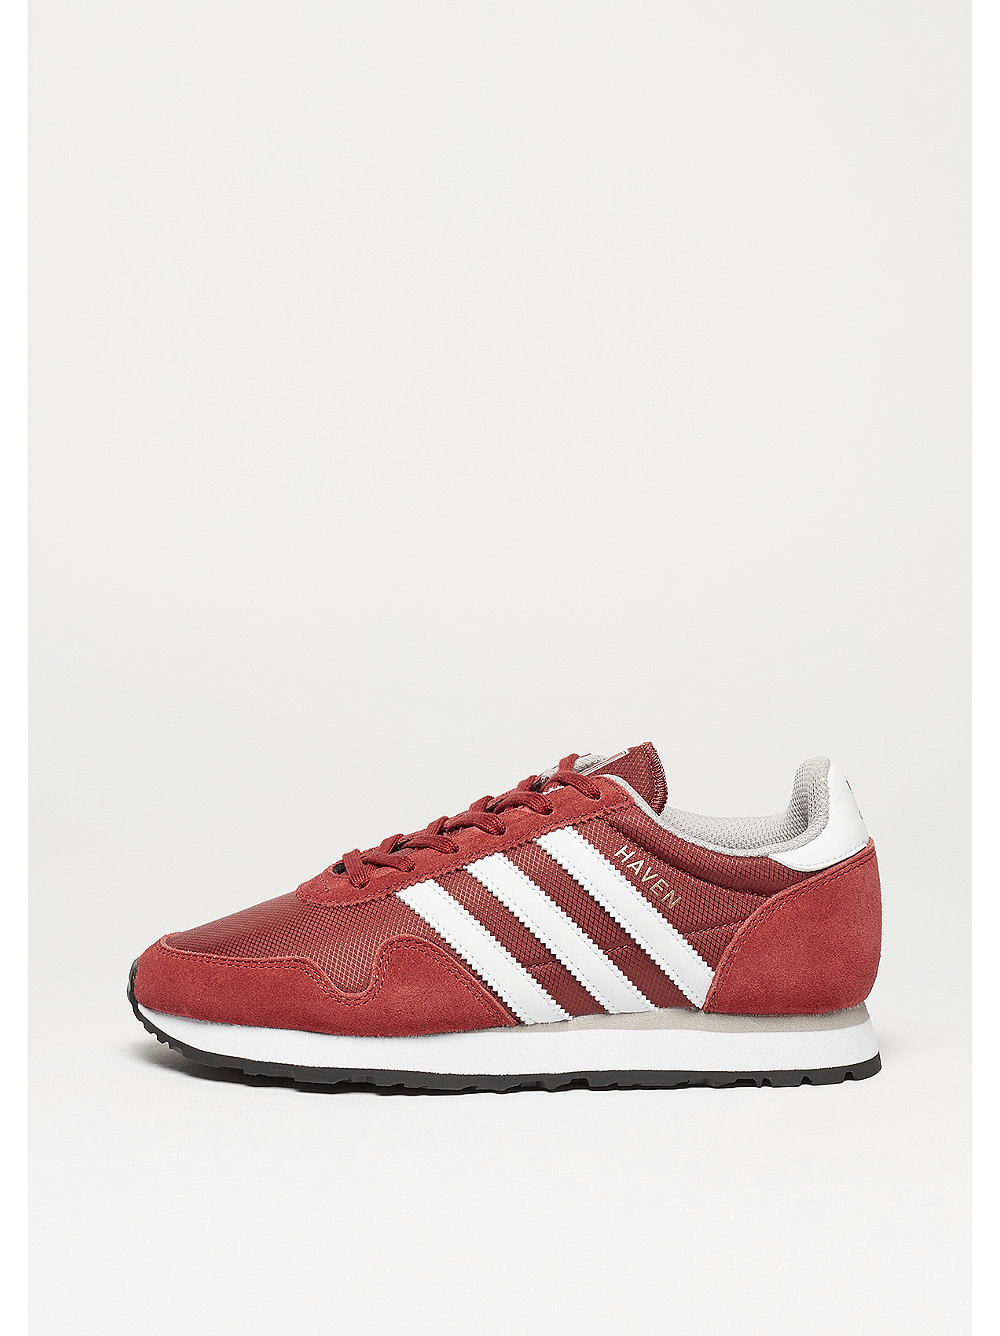 adidas Haven mystery red-white-core granite